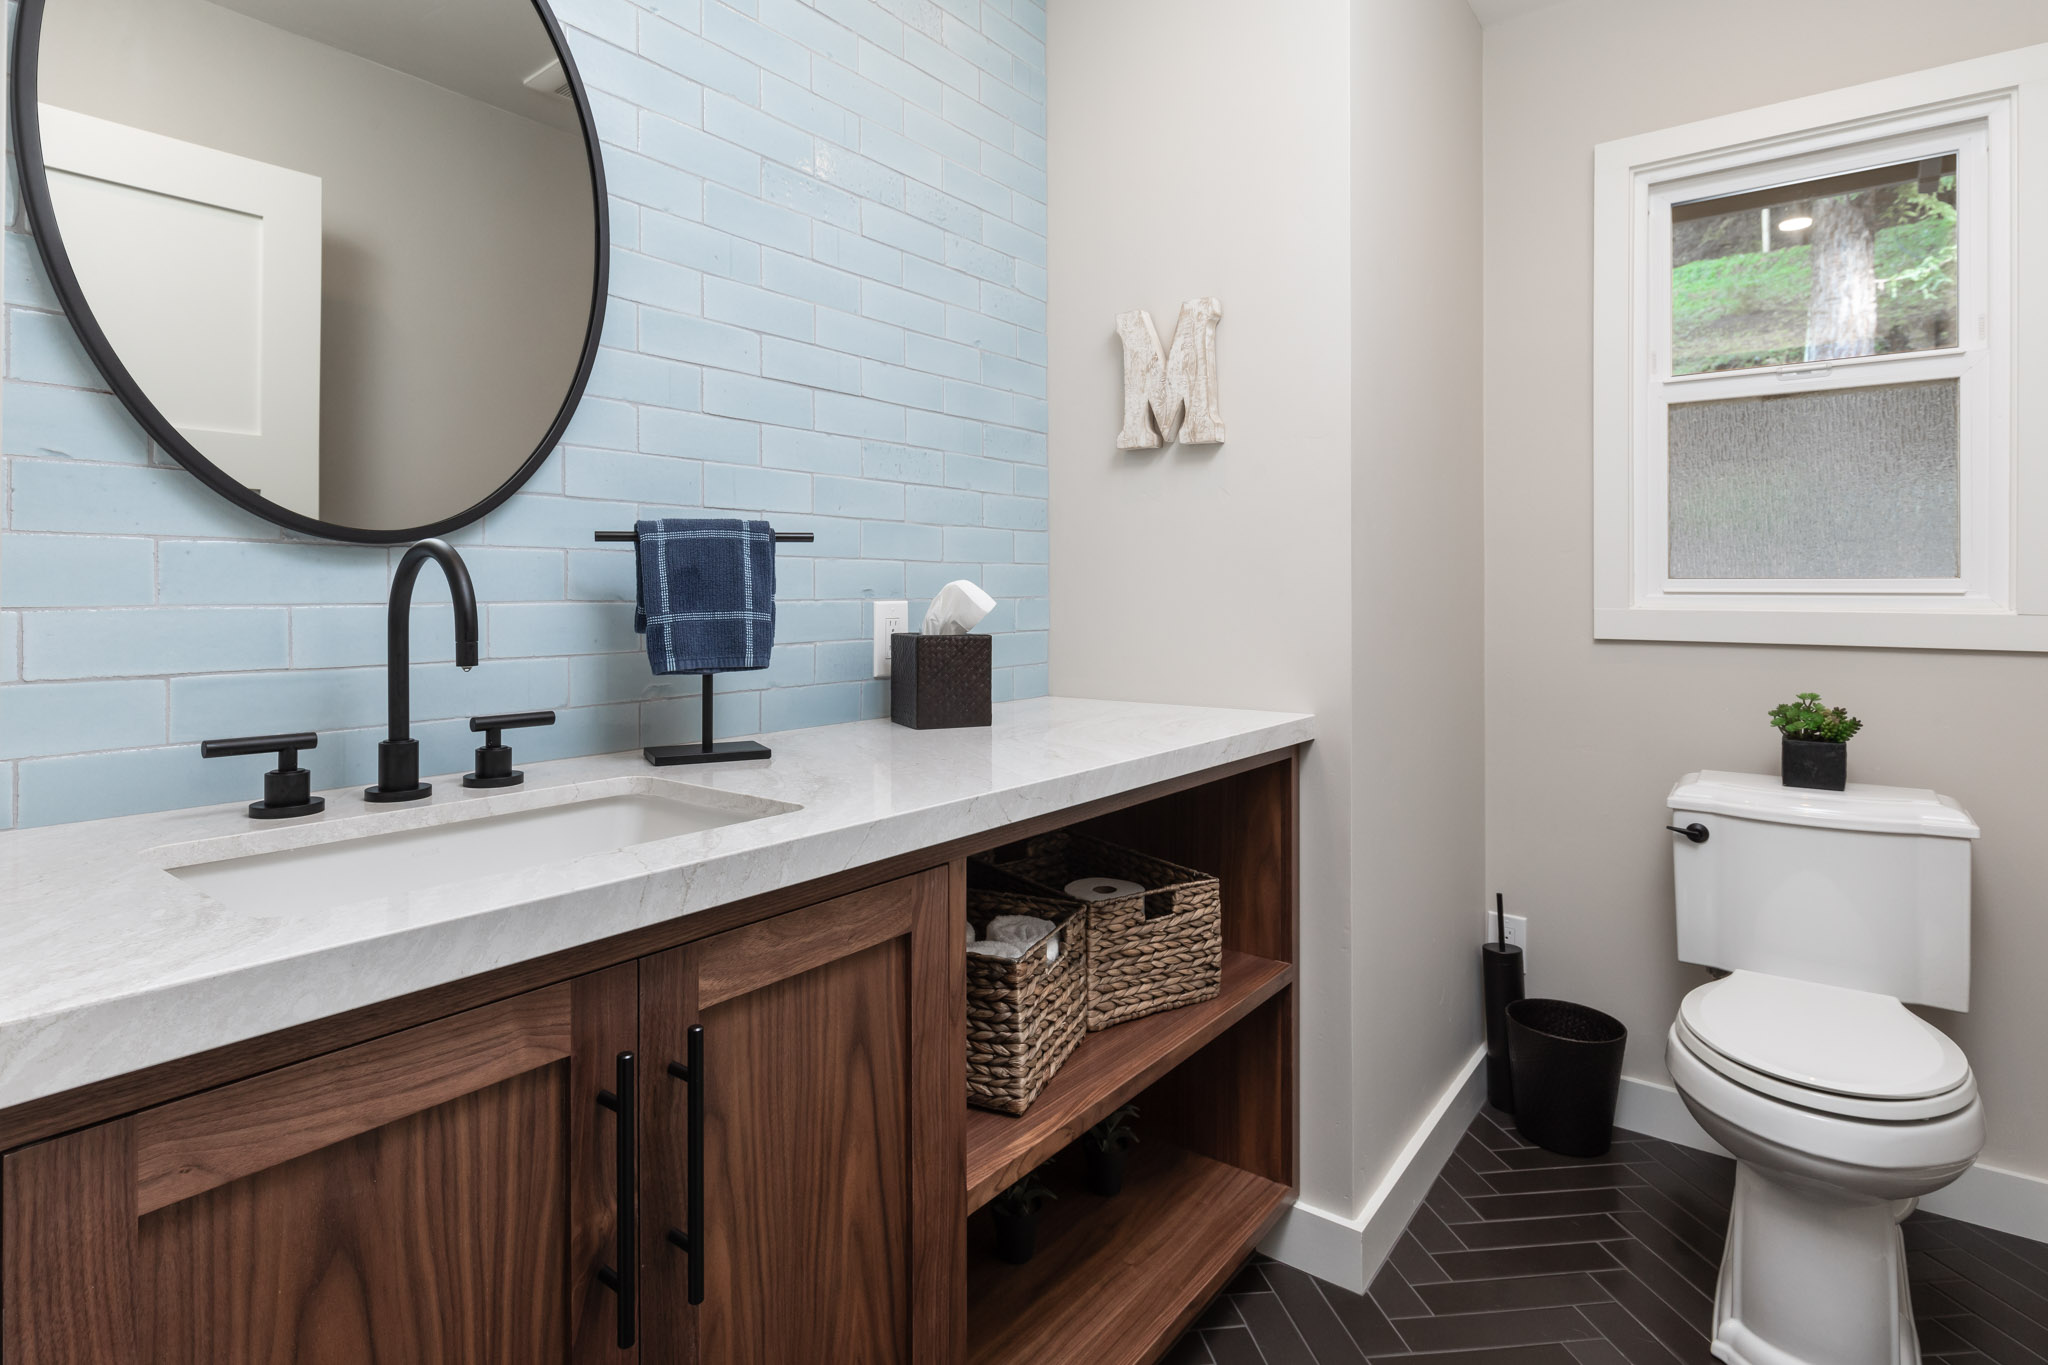 Bathroom counter with white marble top and contrasting black mirror